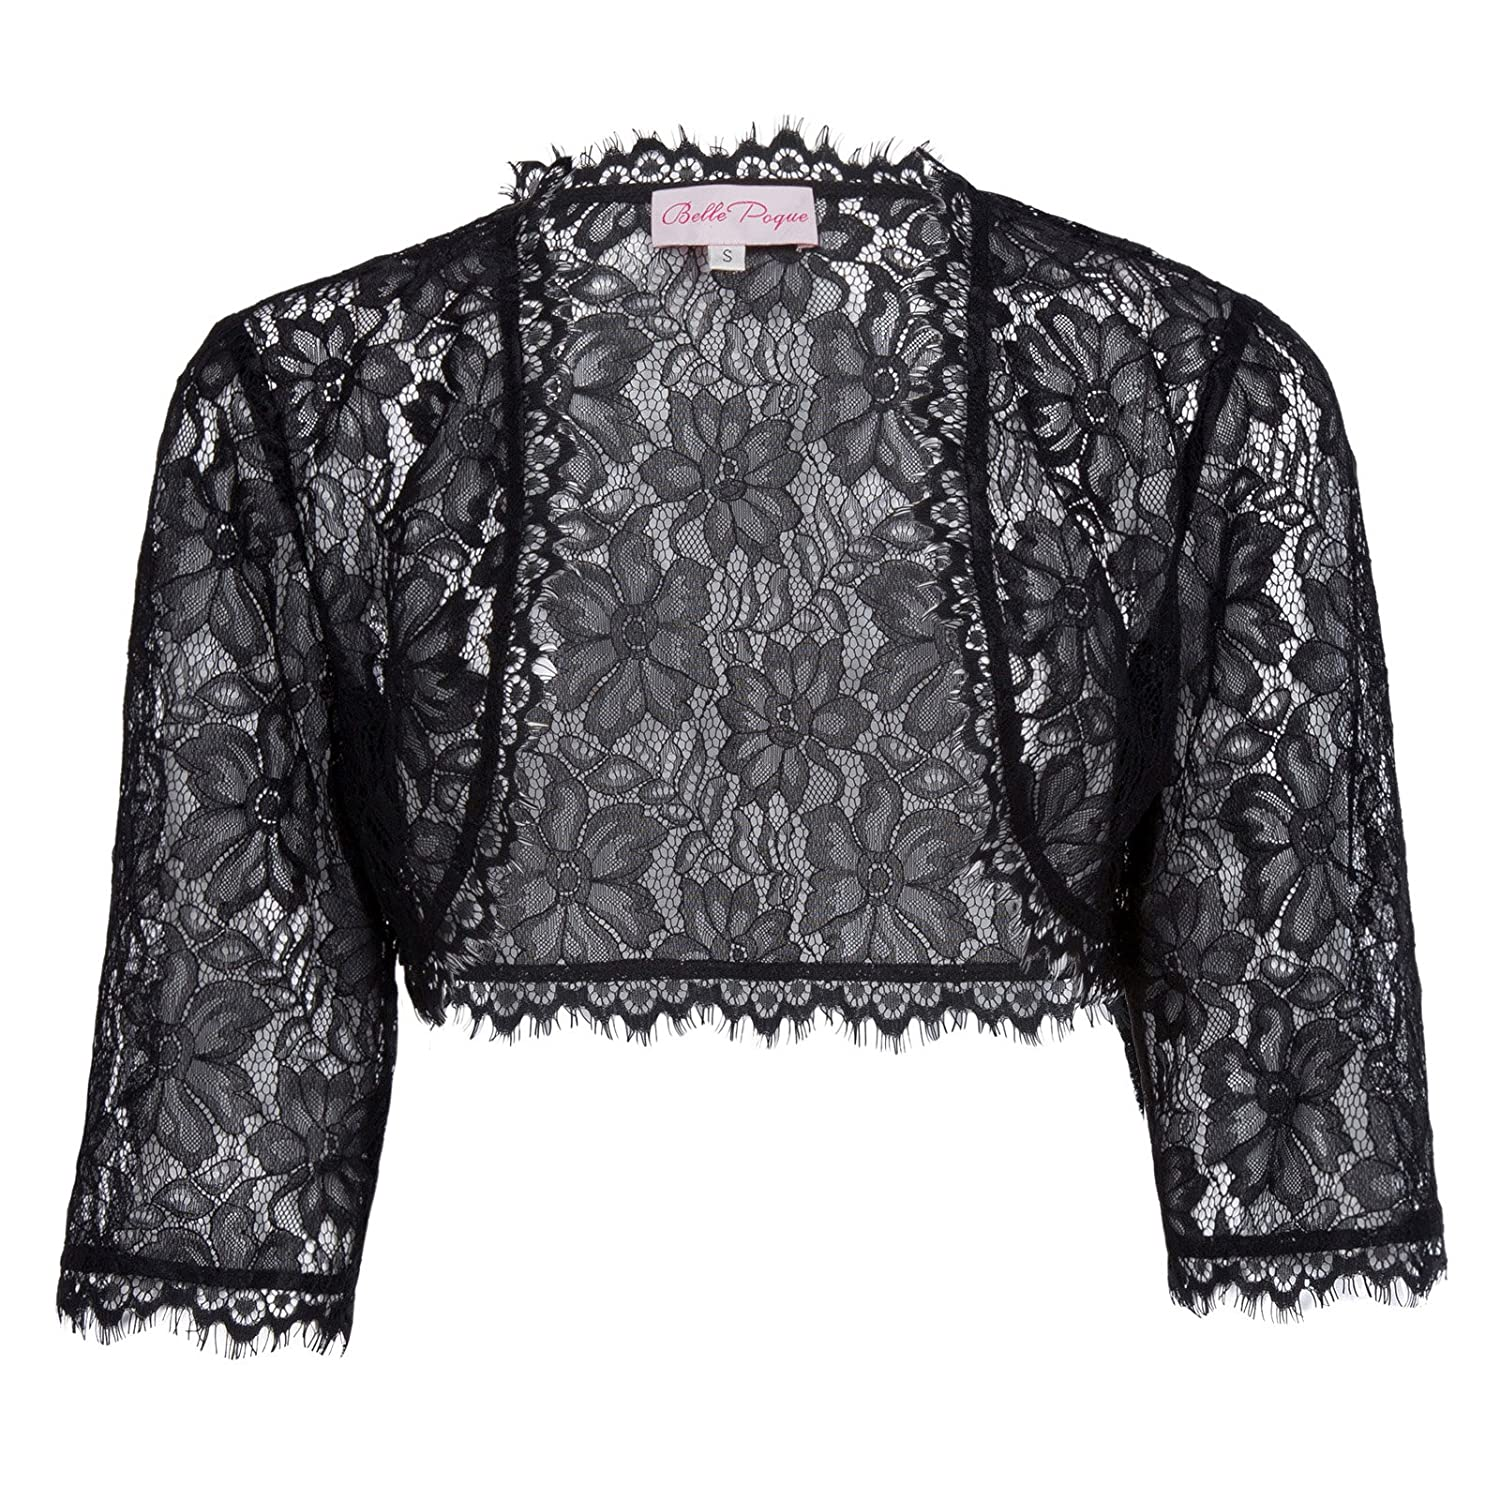 JS Fashion Vintage Dress Women's Long Sleeve Floral Lace Shrug Bolero Cardigan JS49 BP000049New